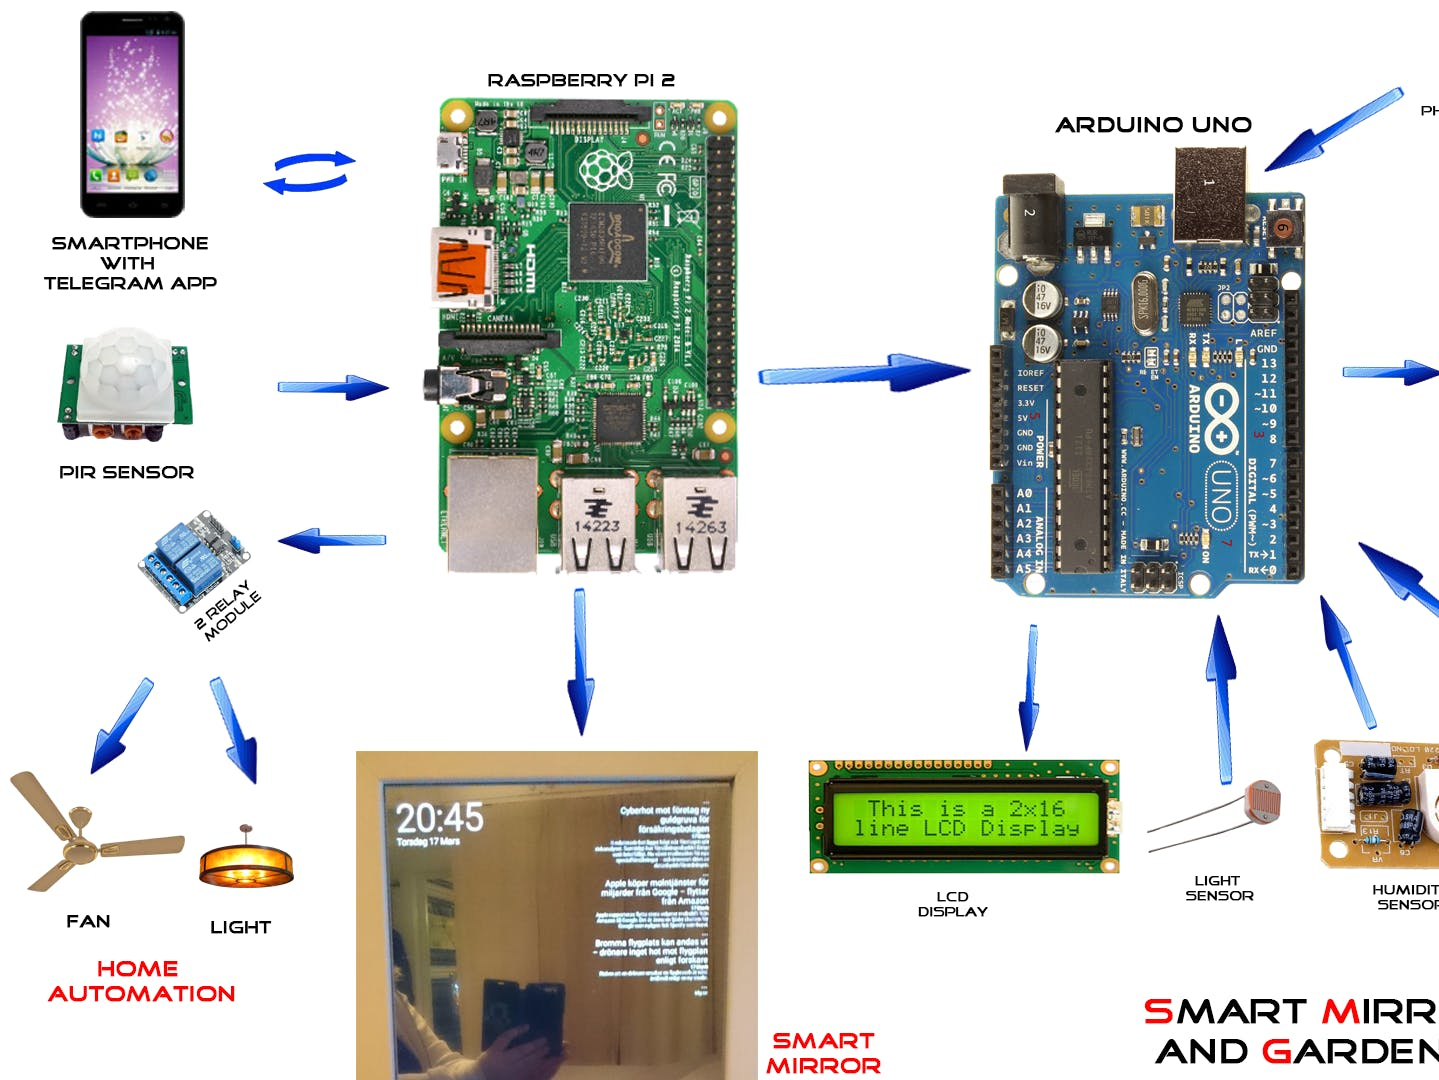 Smart Mirror with Home Automation using chats